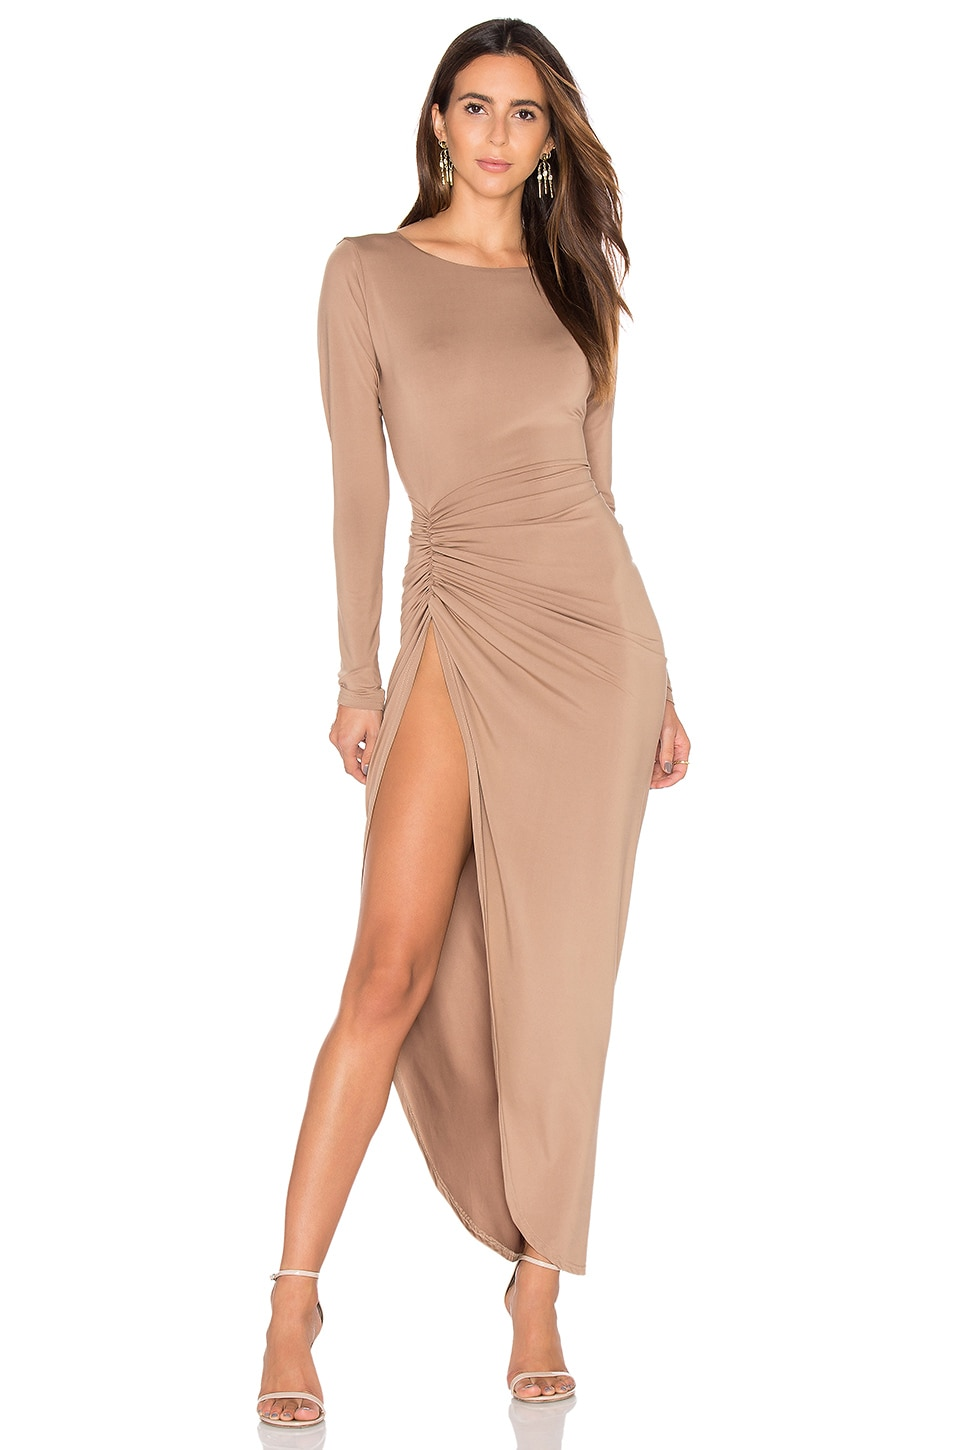 Amore Split Maxi Dress by LIONESS